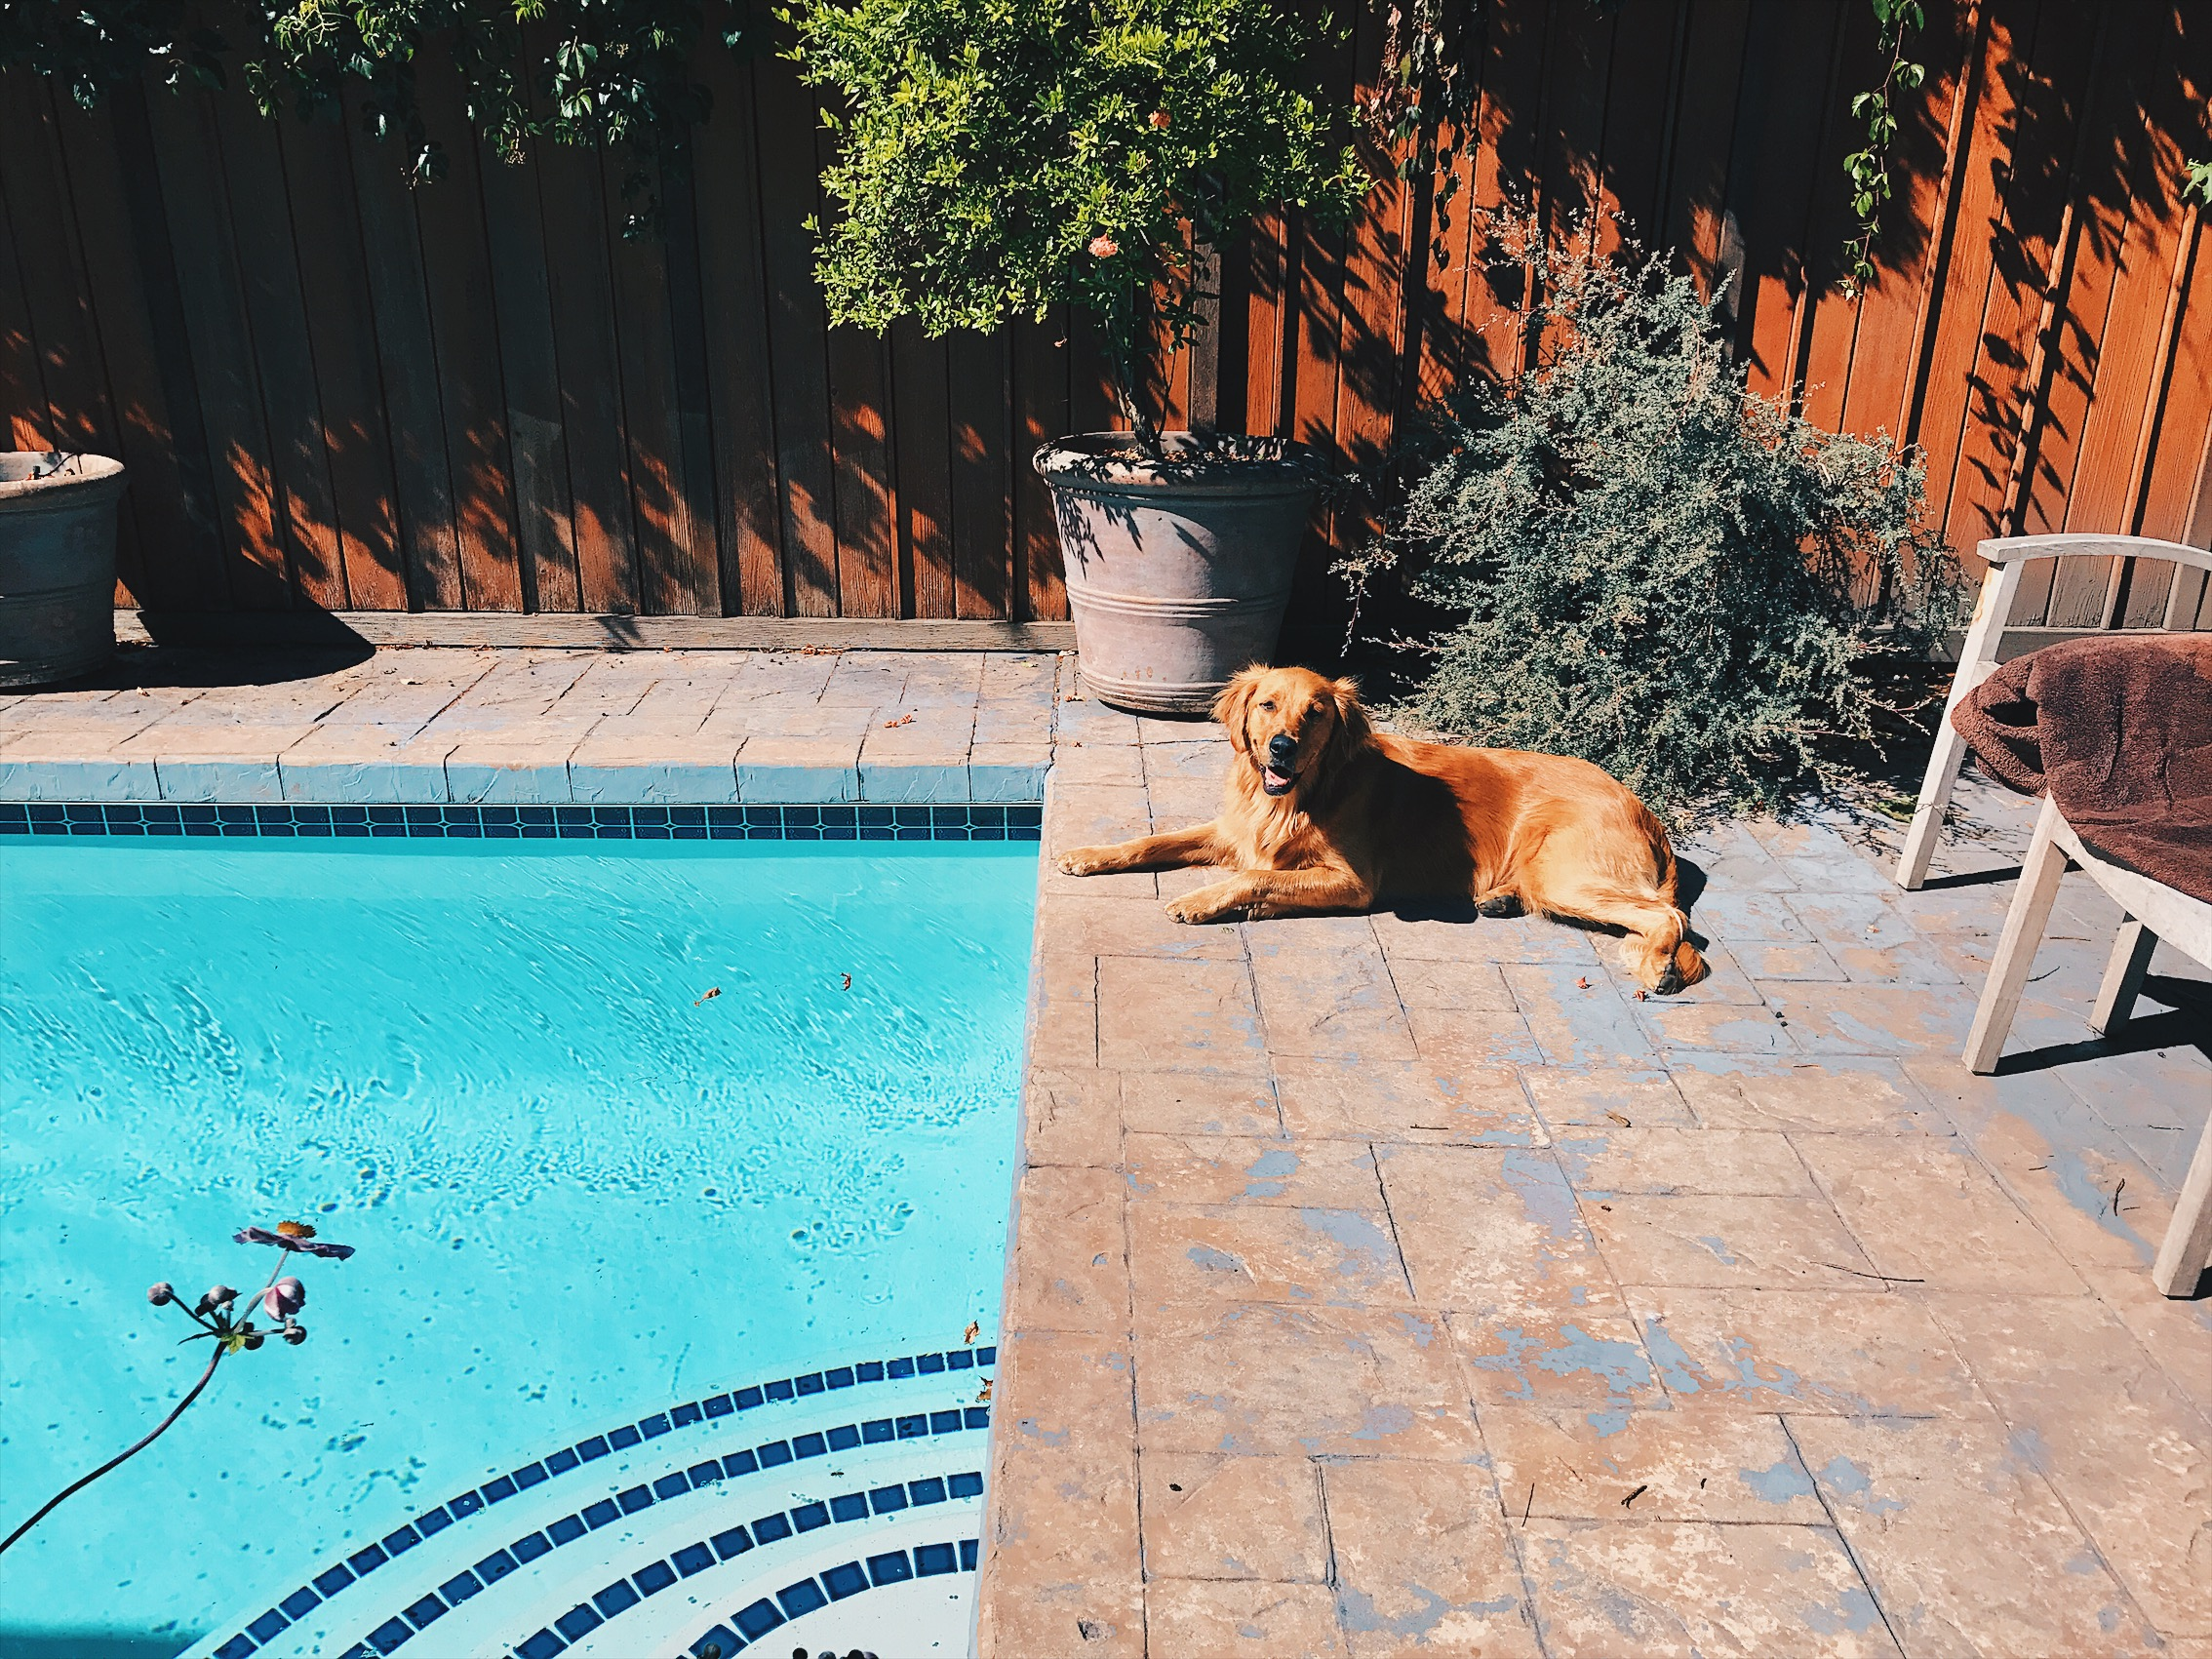 dogs and pools, it doesn't get better (we added a little wine and ice cream too).